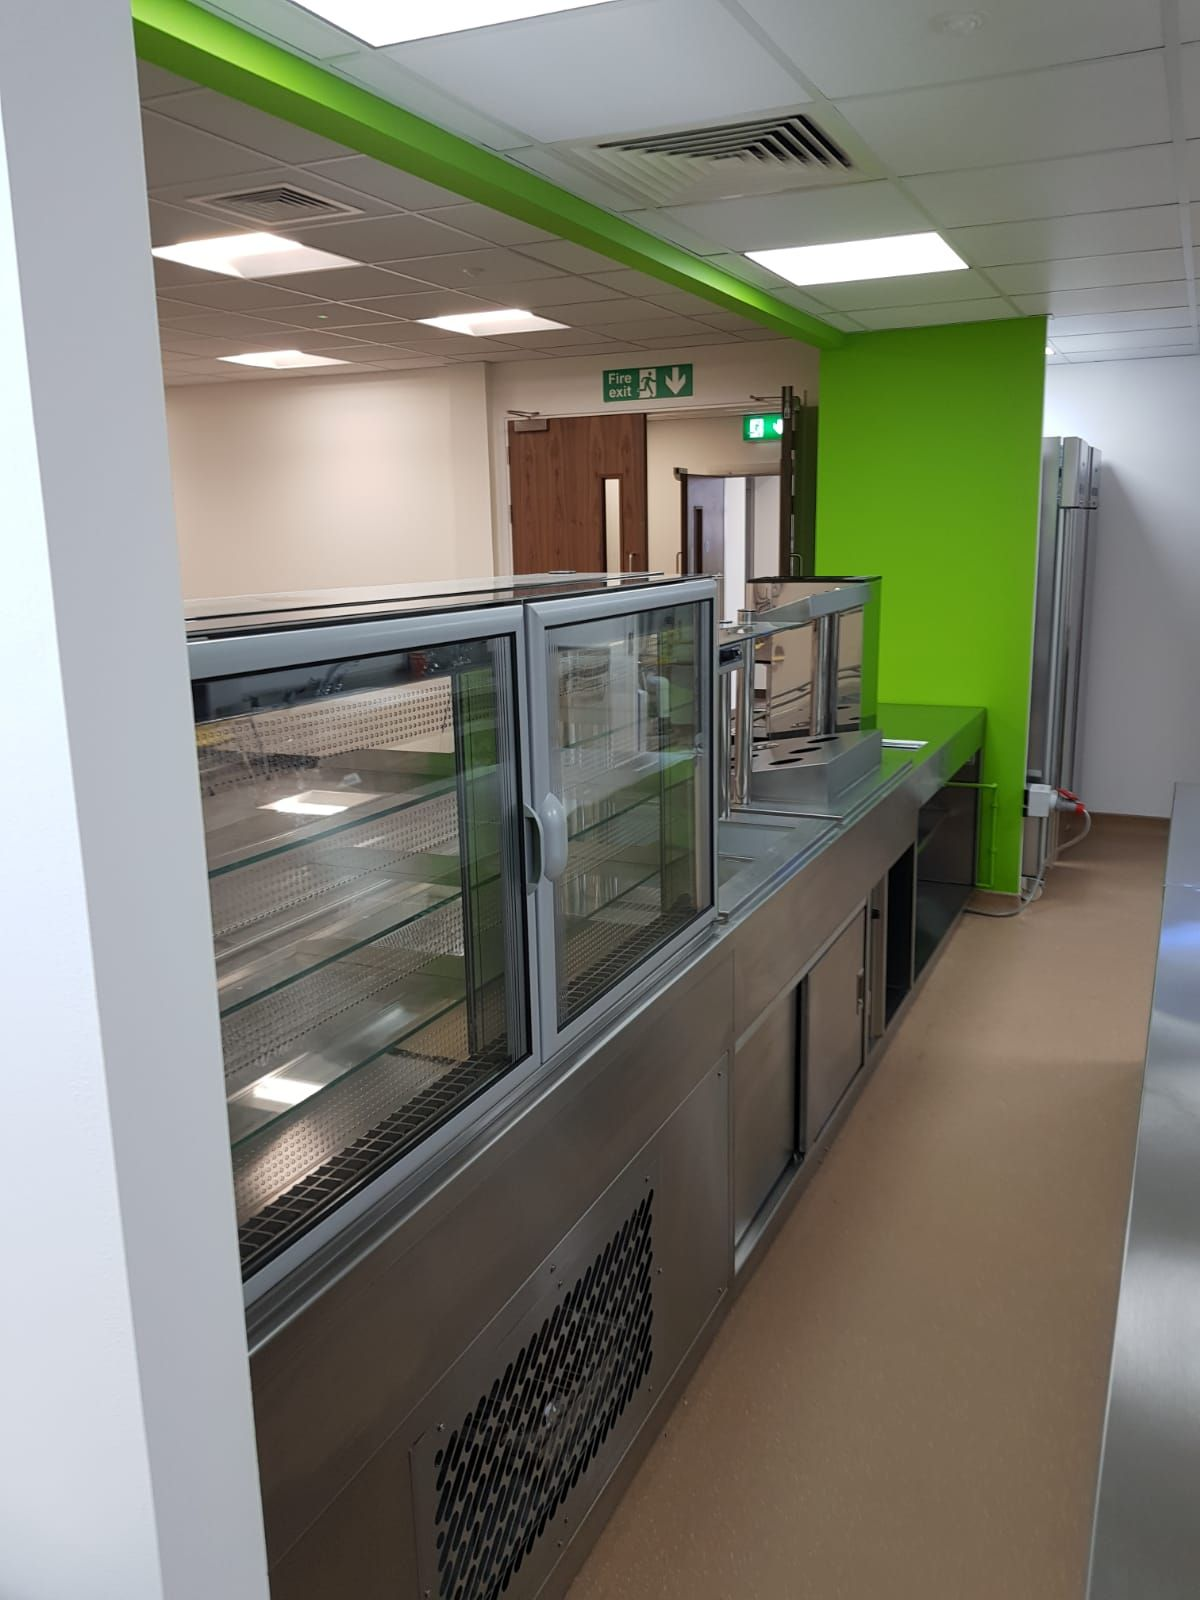 Bosch Wheatley Hall Road Doncaster Dolphin Catering Recently Supplied Installe Ventilation System Stainless Steel Fabrication Steel Fabrication